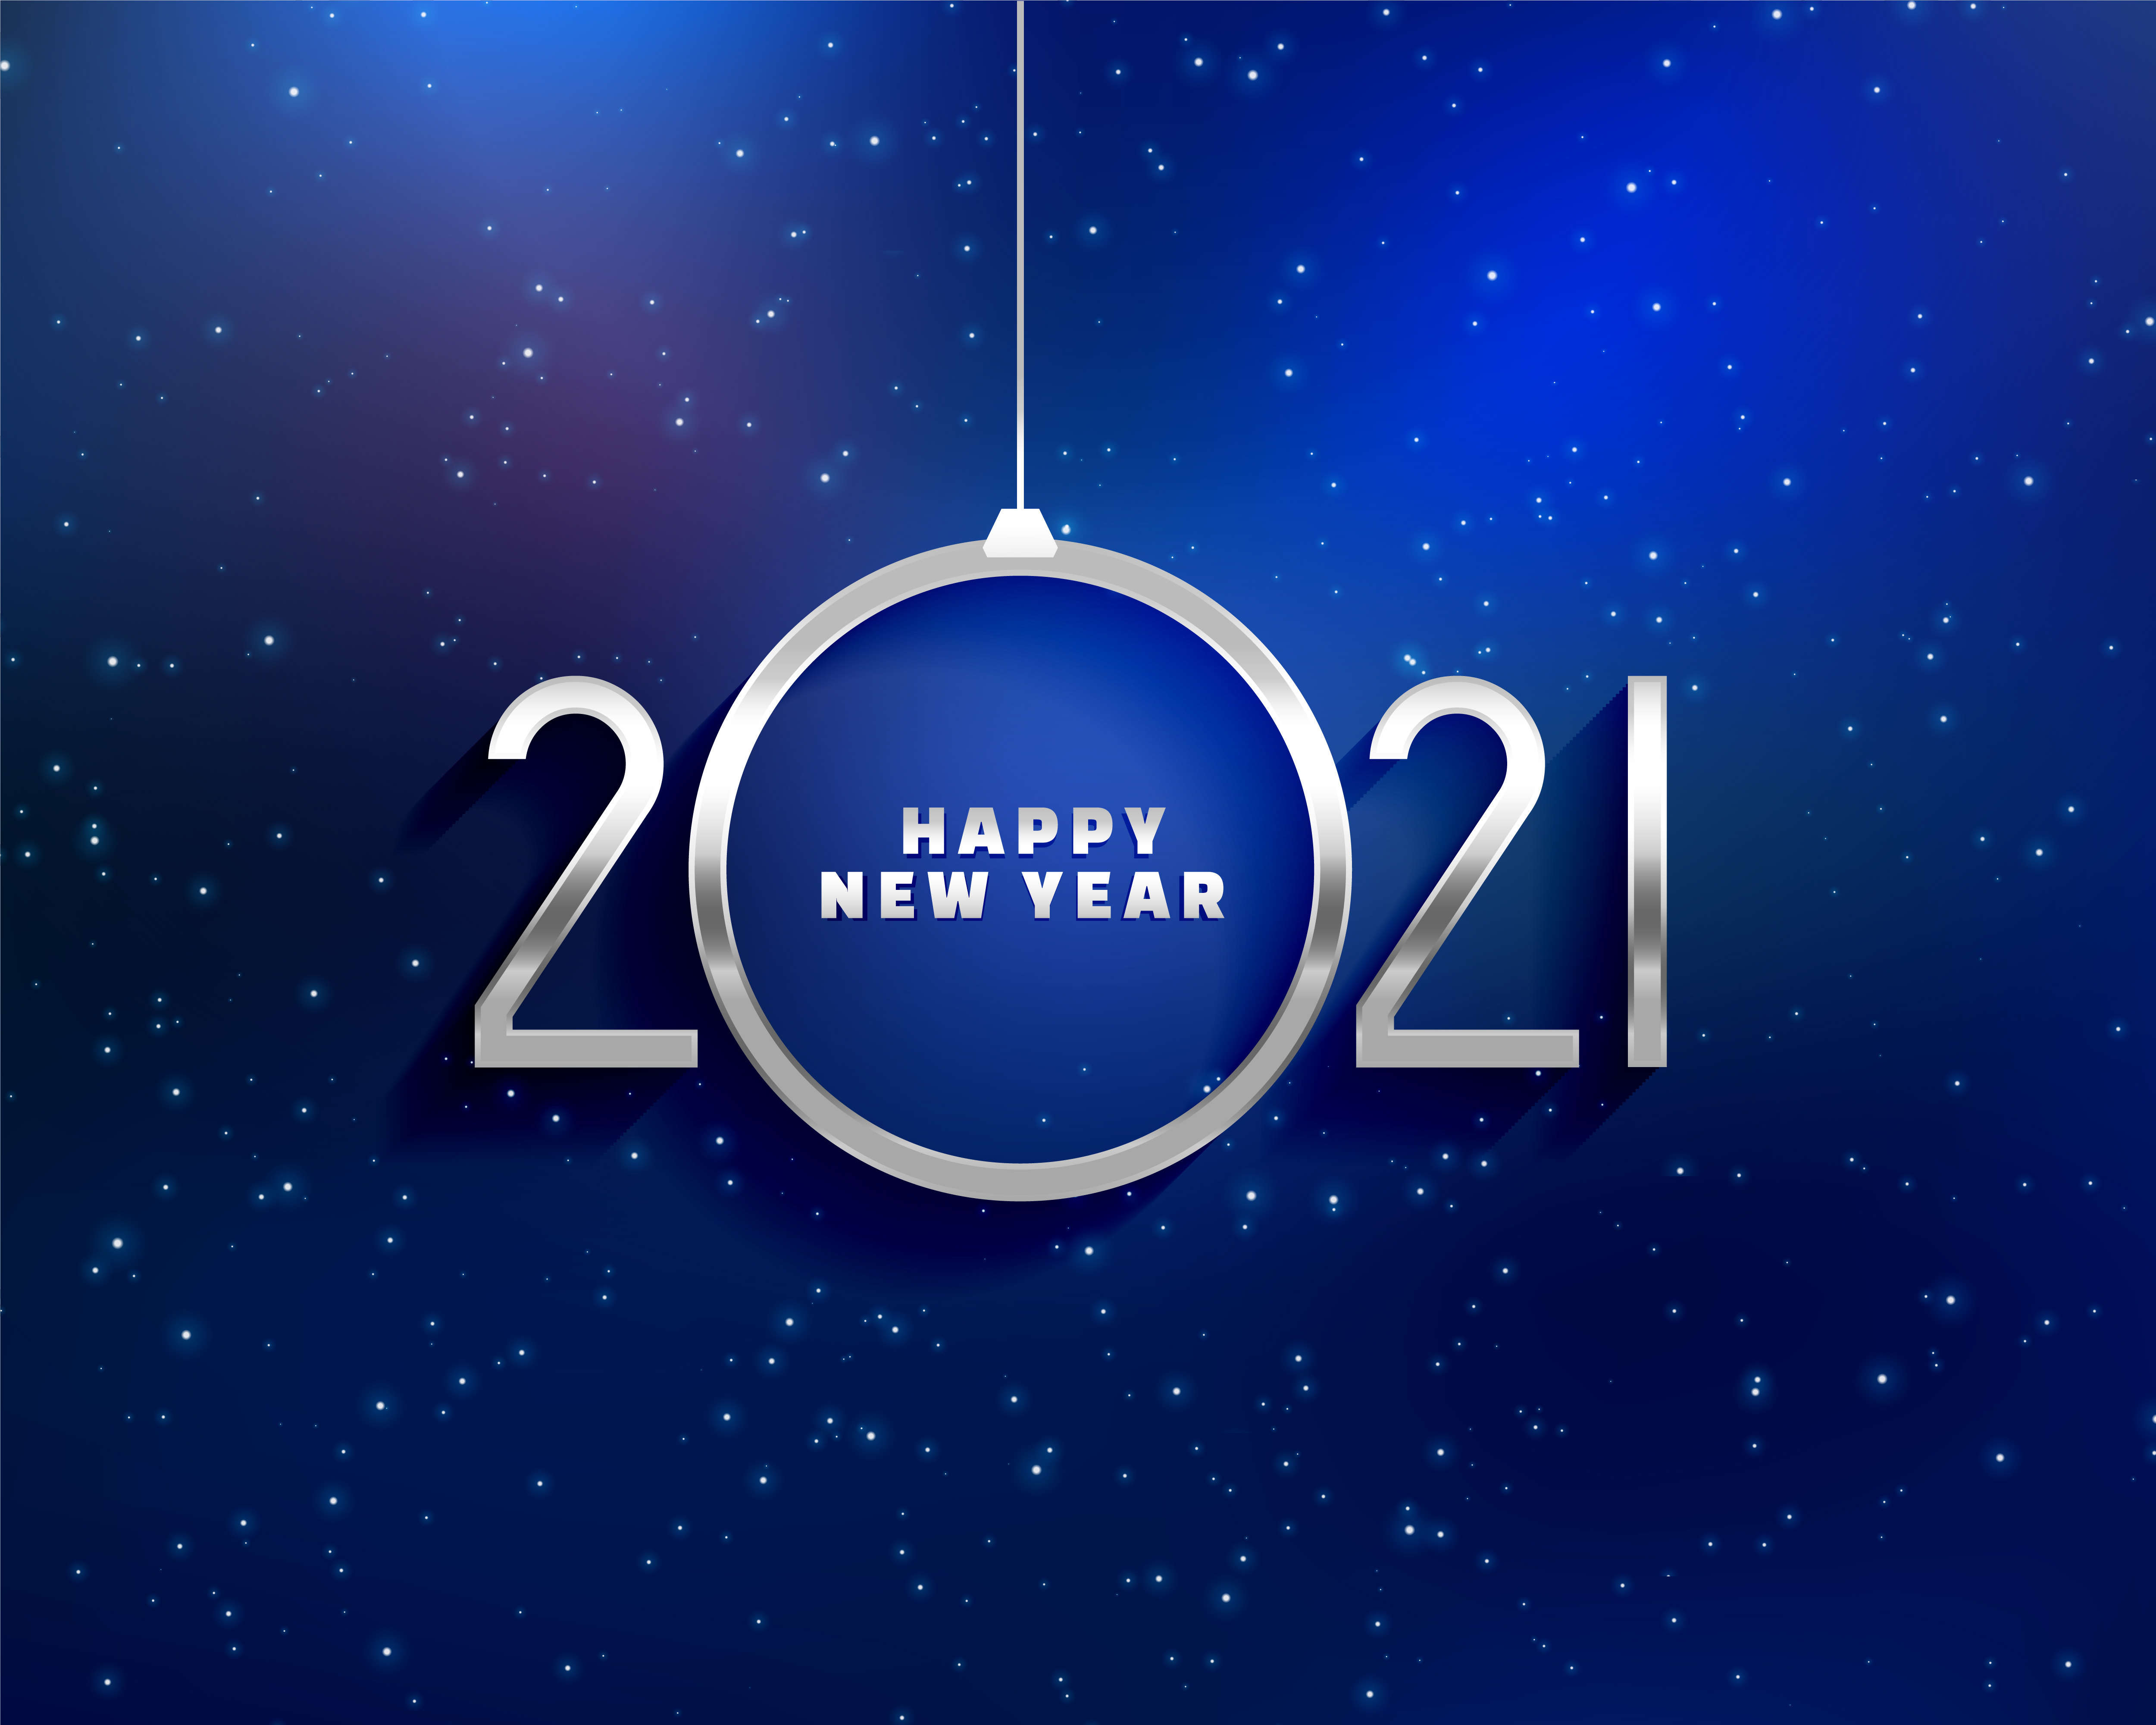 happy 2021 new year card in silver 3d style